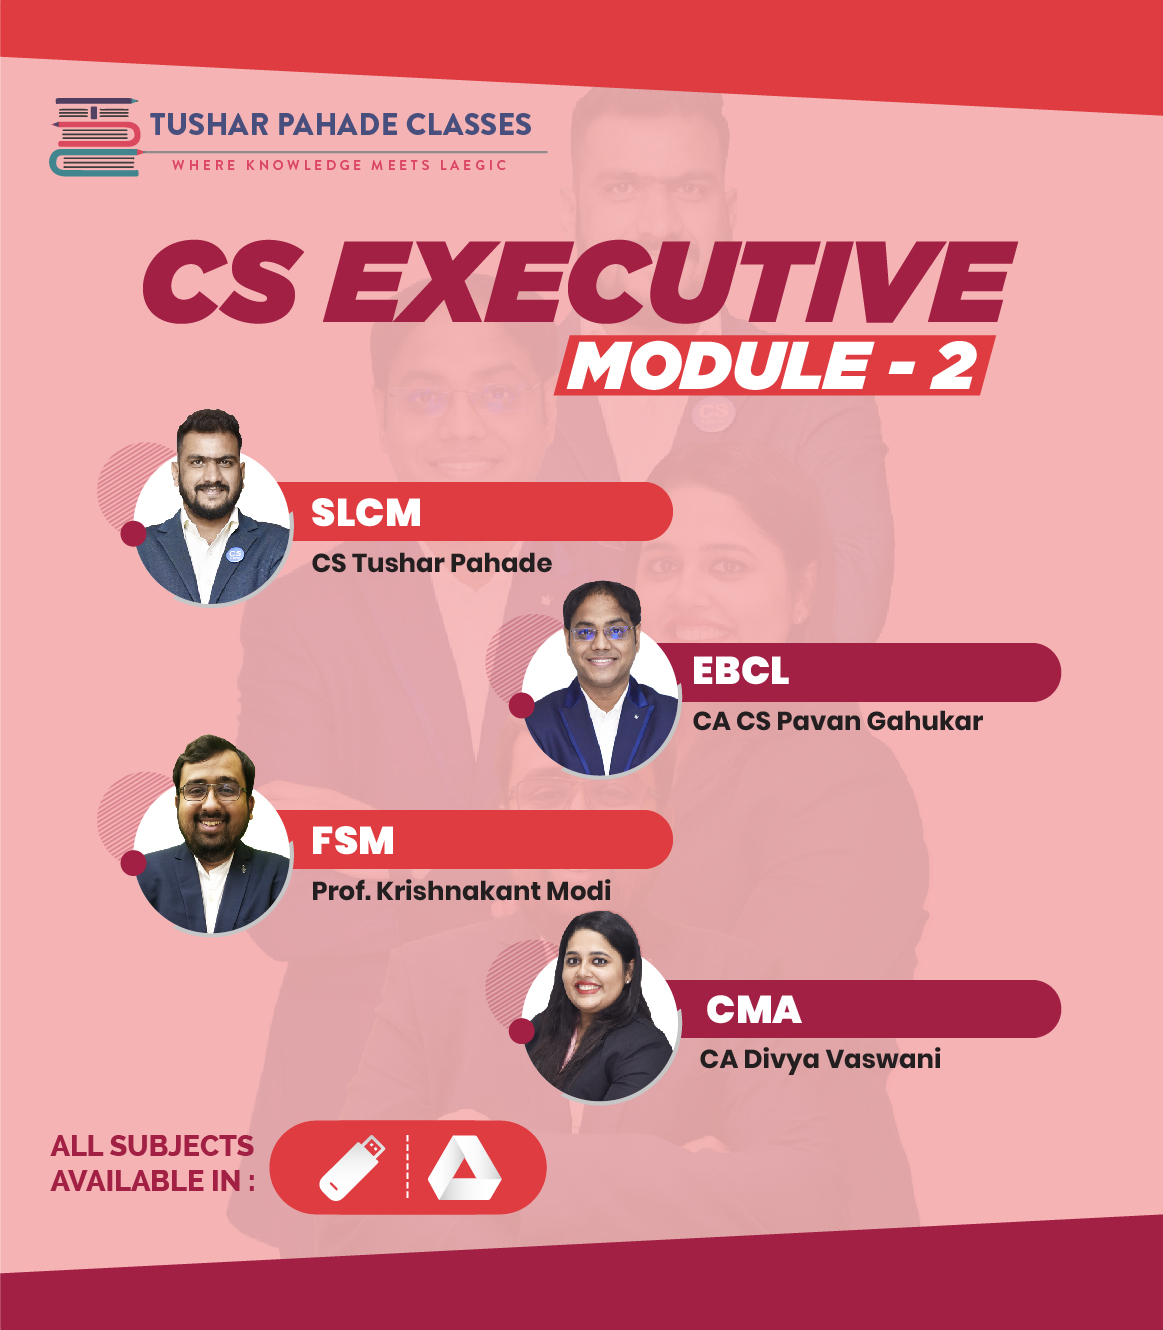 CS Executive Module 2 subjects pendrive classes and study msterial